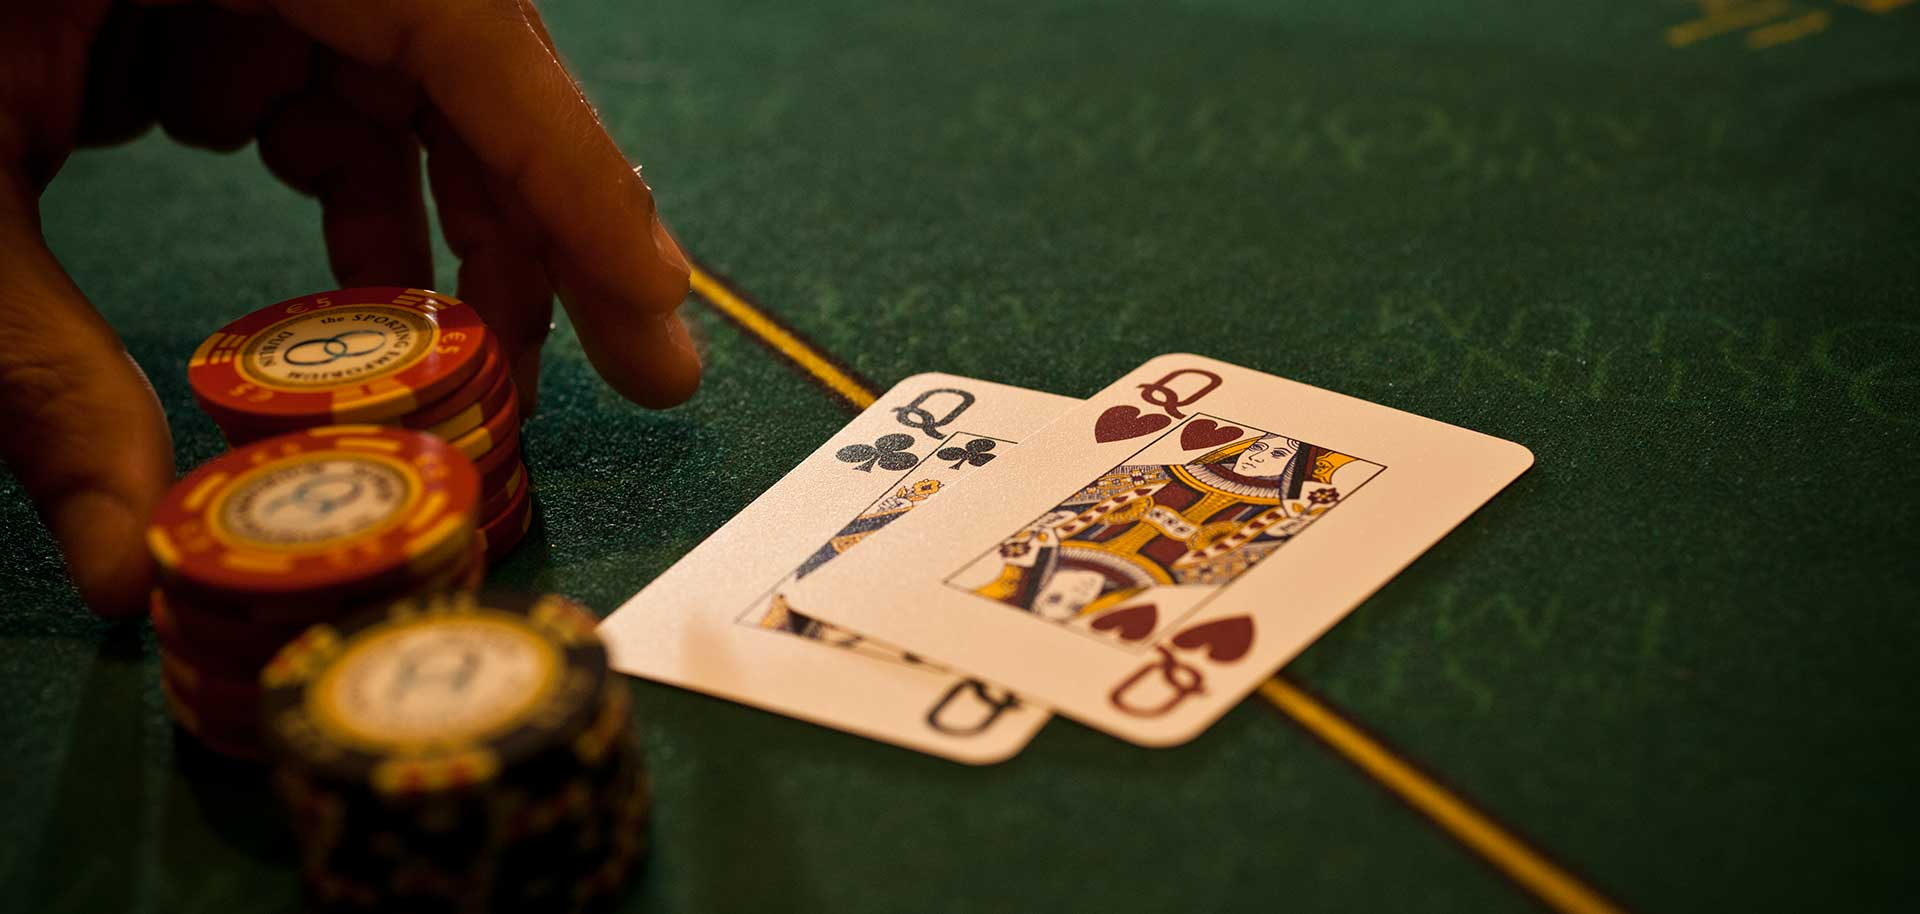 Online Casino Troubleshooting Tips to Help Optimize Your Games